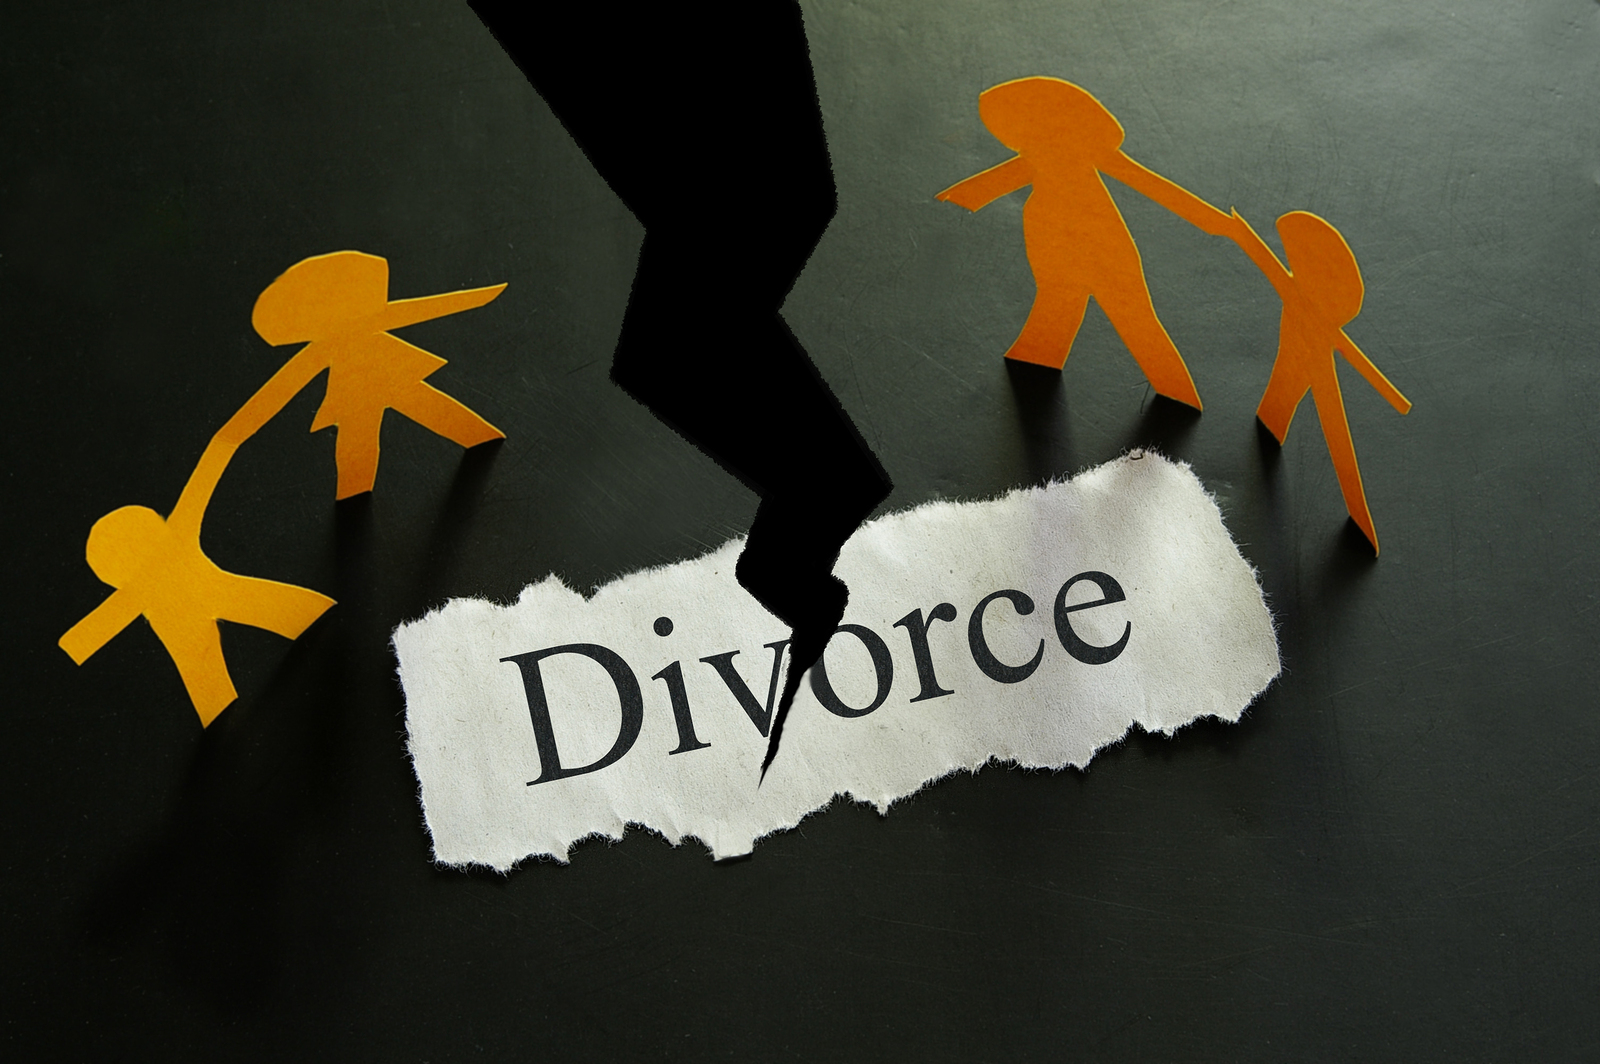 Family Law Attorney - Their Services